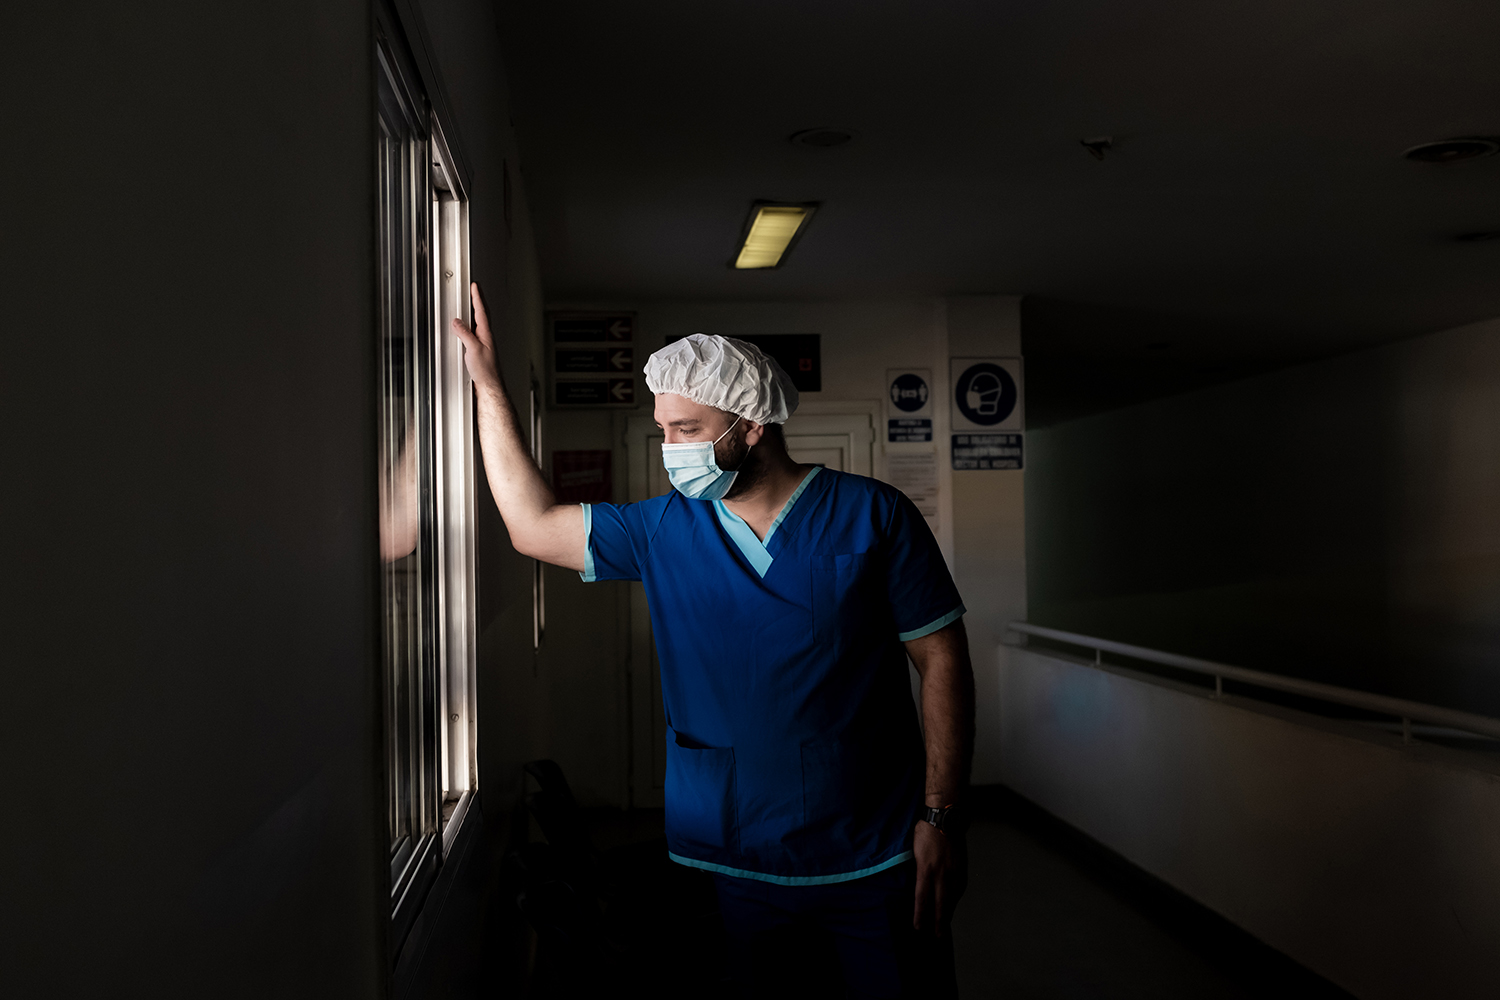 Damián Leyes, the supervisor of the morning shift at Mariano y Luciano de la Vega, stands in the hallway of the hospital on May 7.